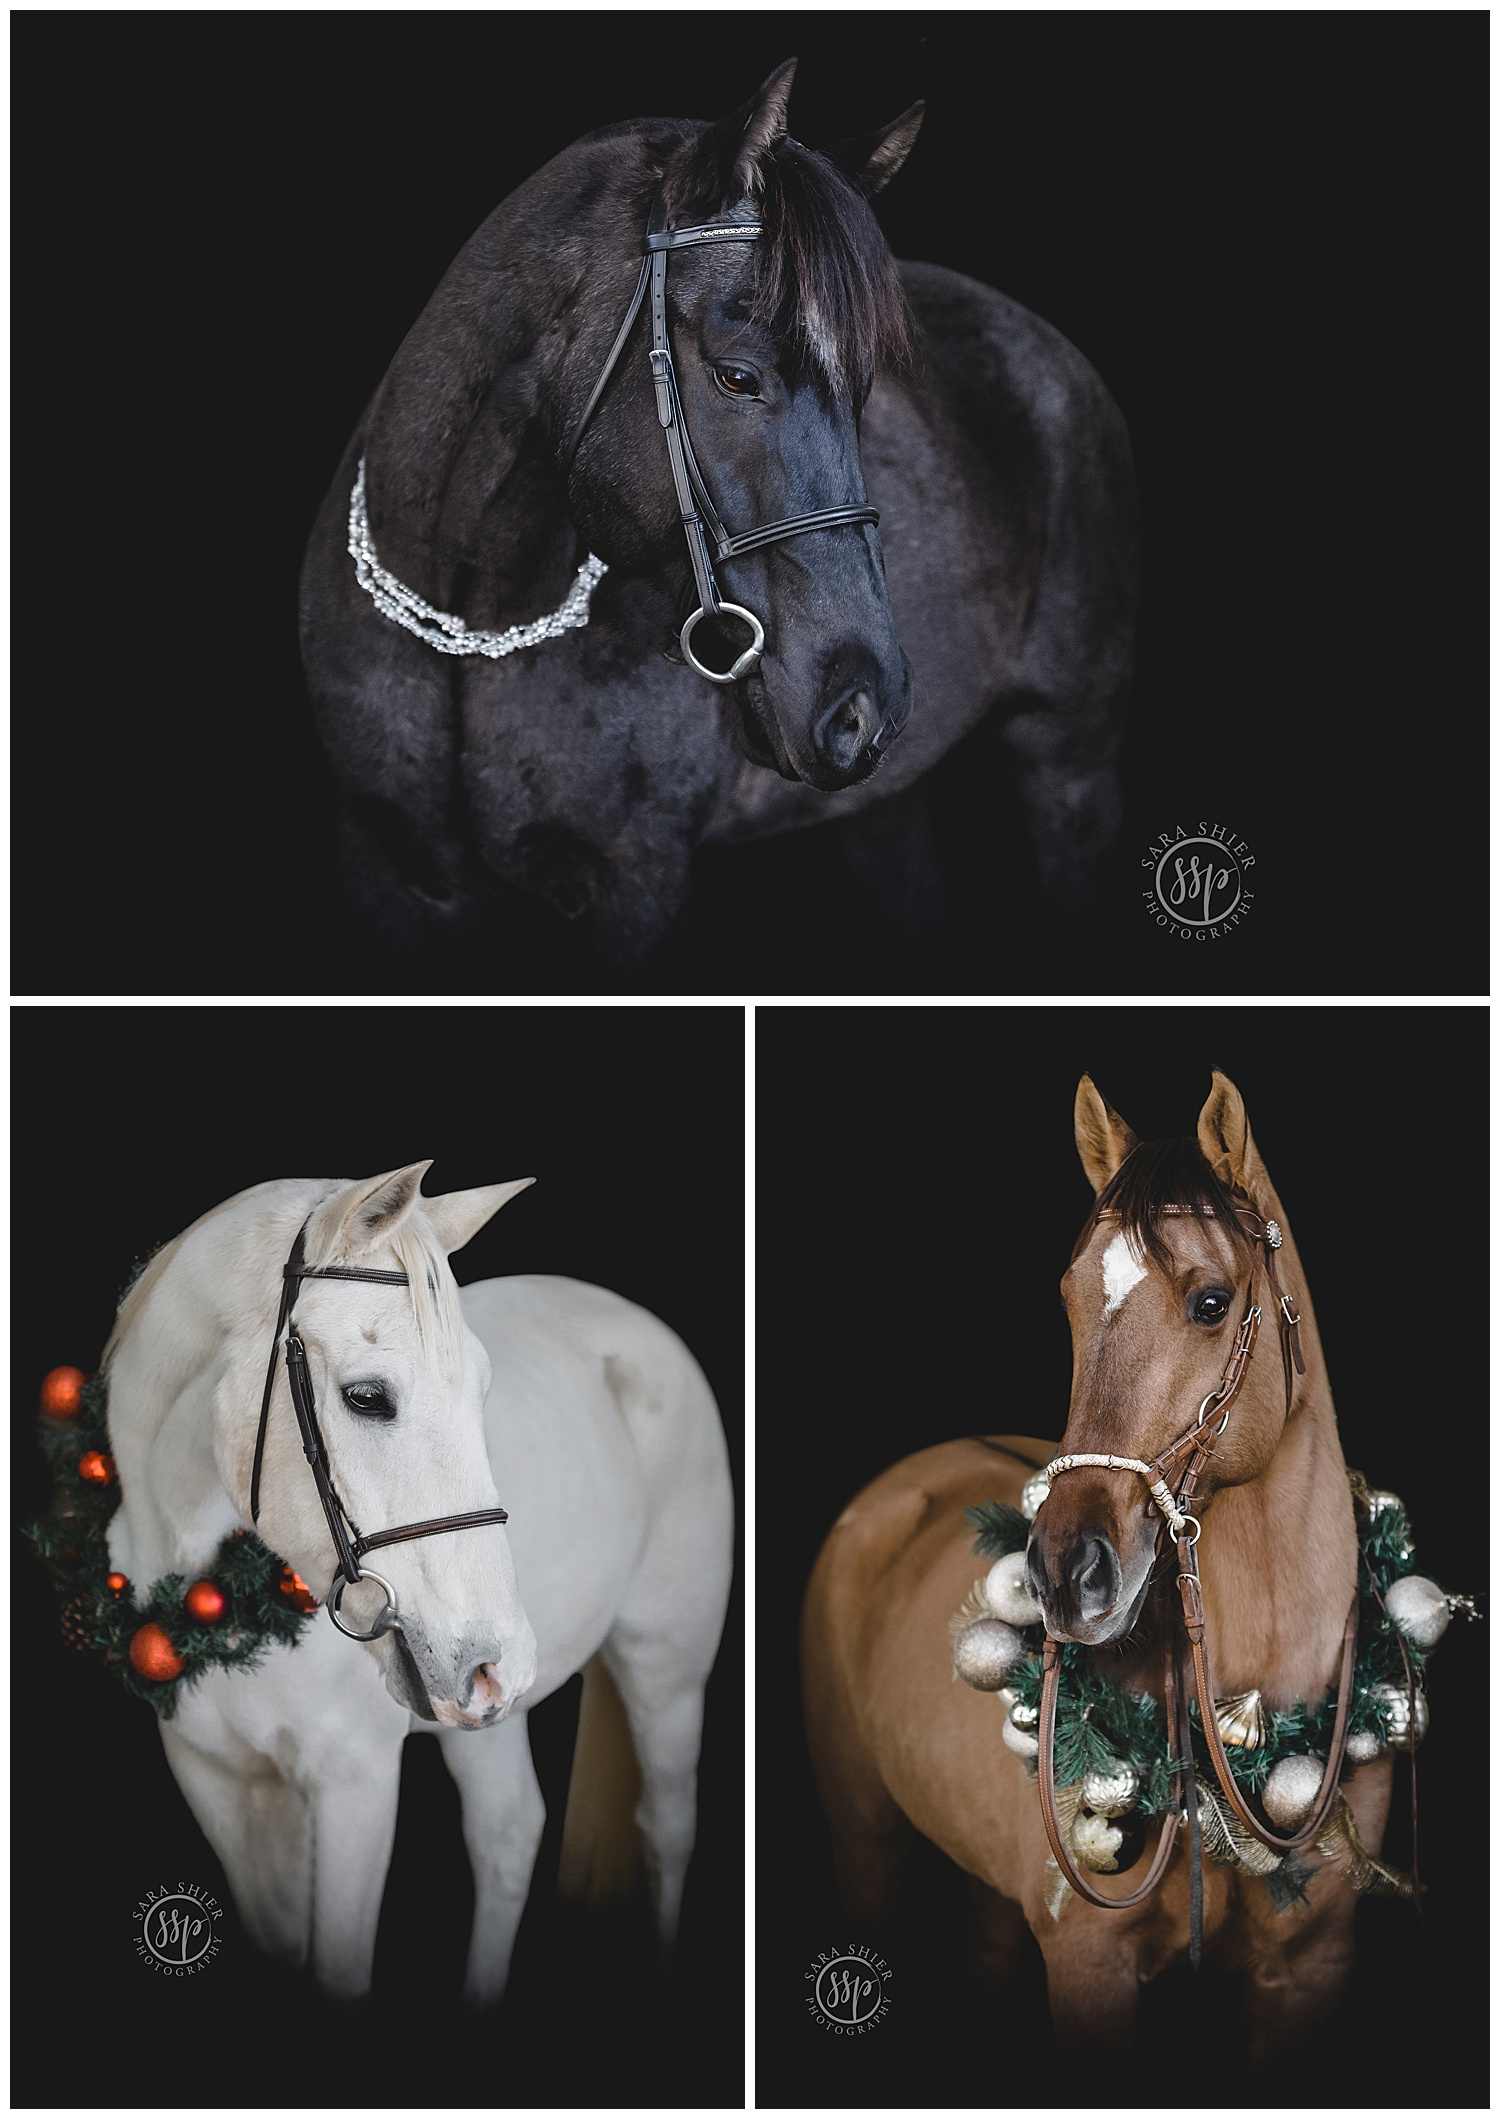 Black Background Horse Rider Equine Photographer Southern California Sara Shier Photography SoCal Equestrian Cowgirl_0168.jpg